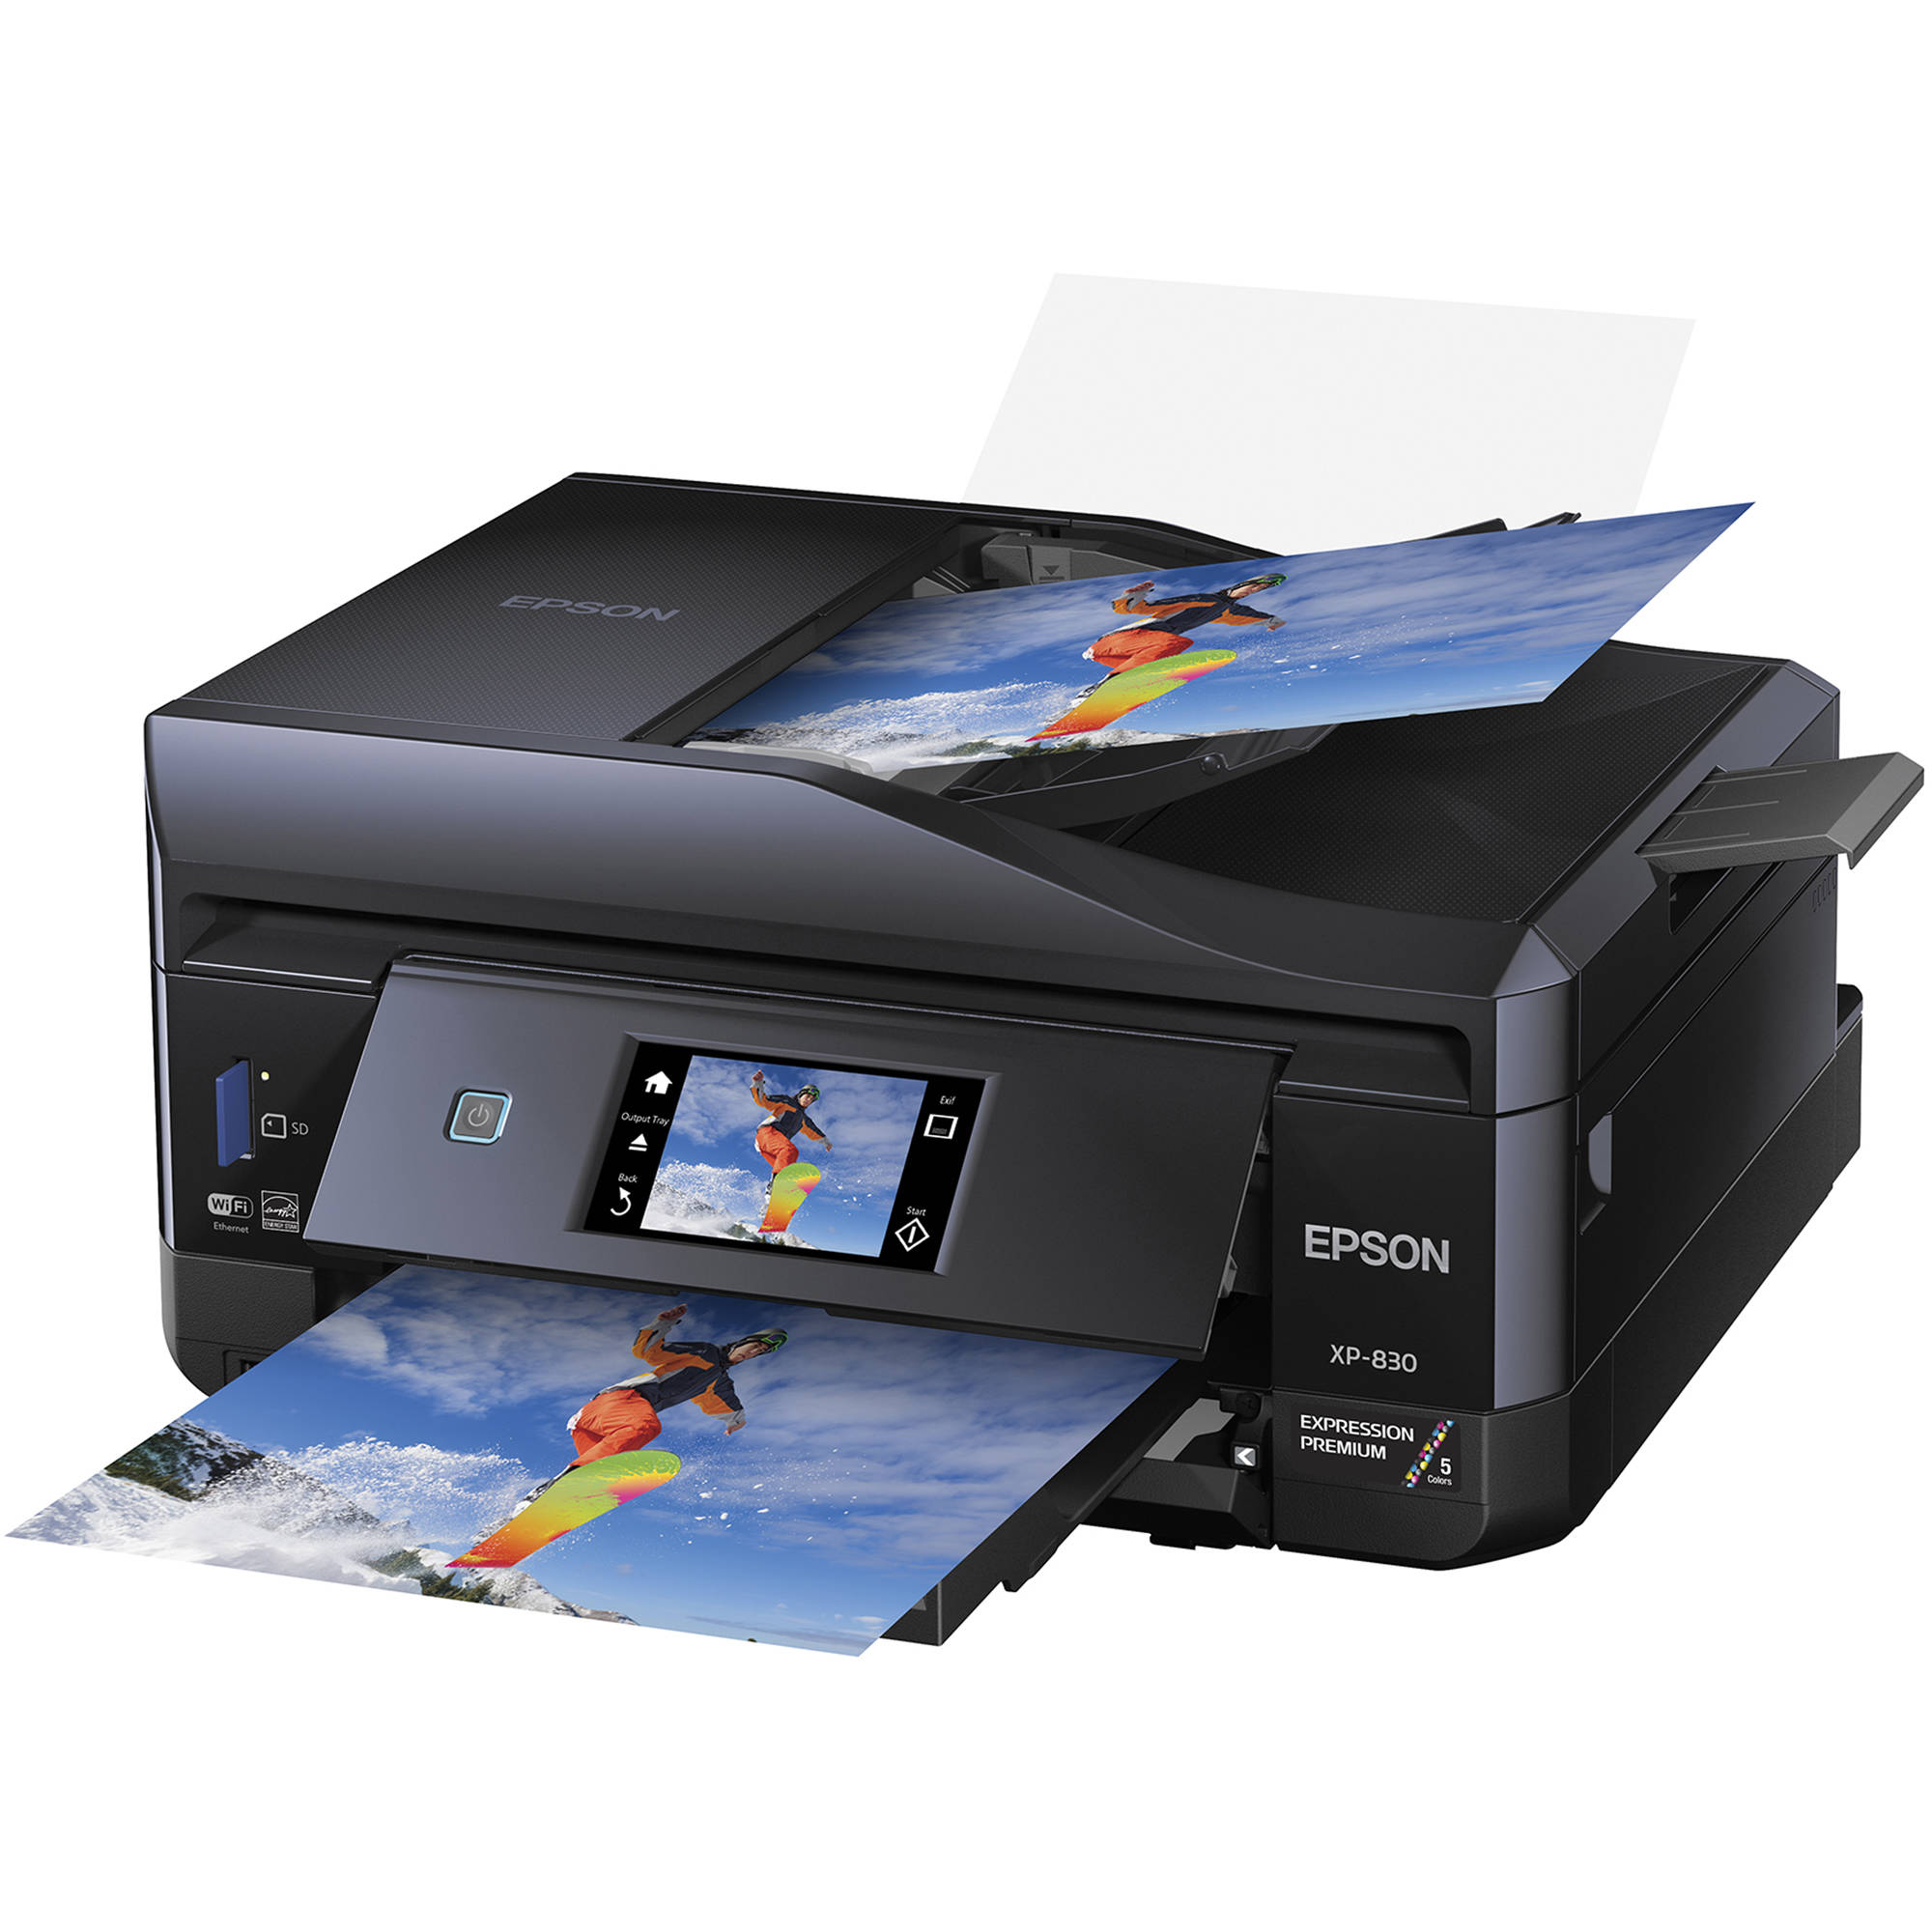 Epson Expression Premium XP-830 Small-In-One Inkjet C11CE78201